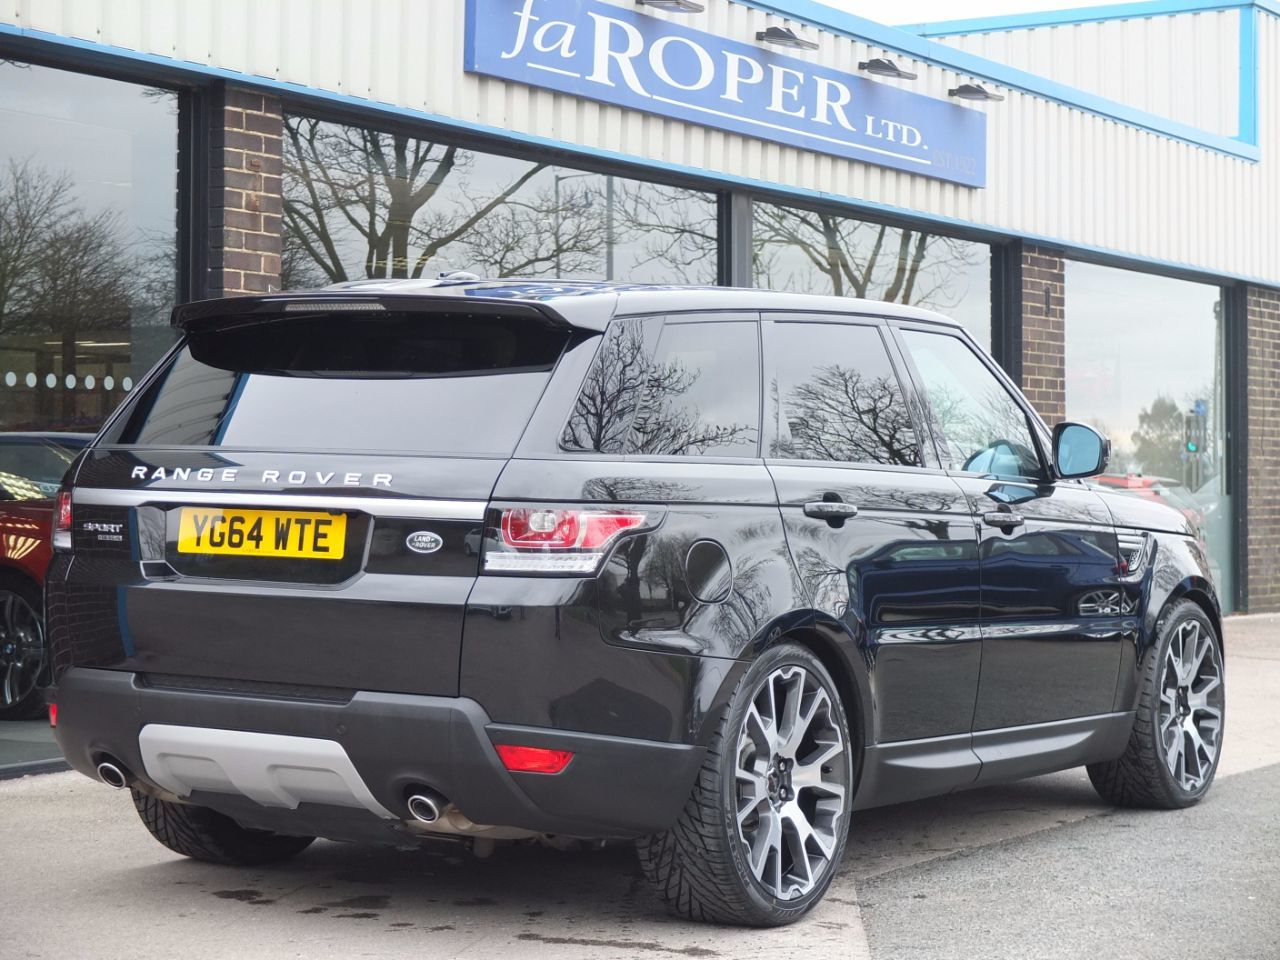 Land Rover Range Rover Sport 3.0 SDV6 HSE Auto (Panoramic Roof) Estate Diesel Santorini Black Metallic